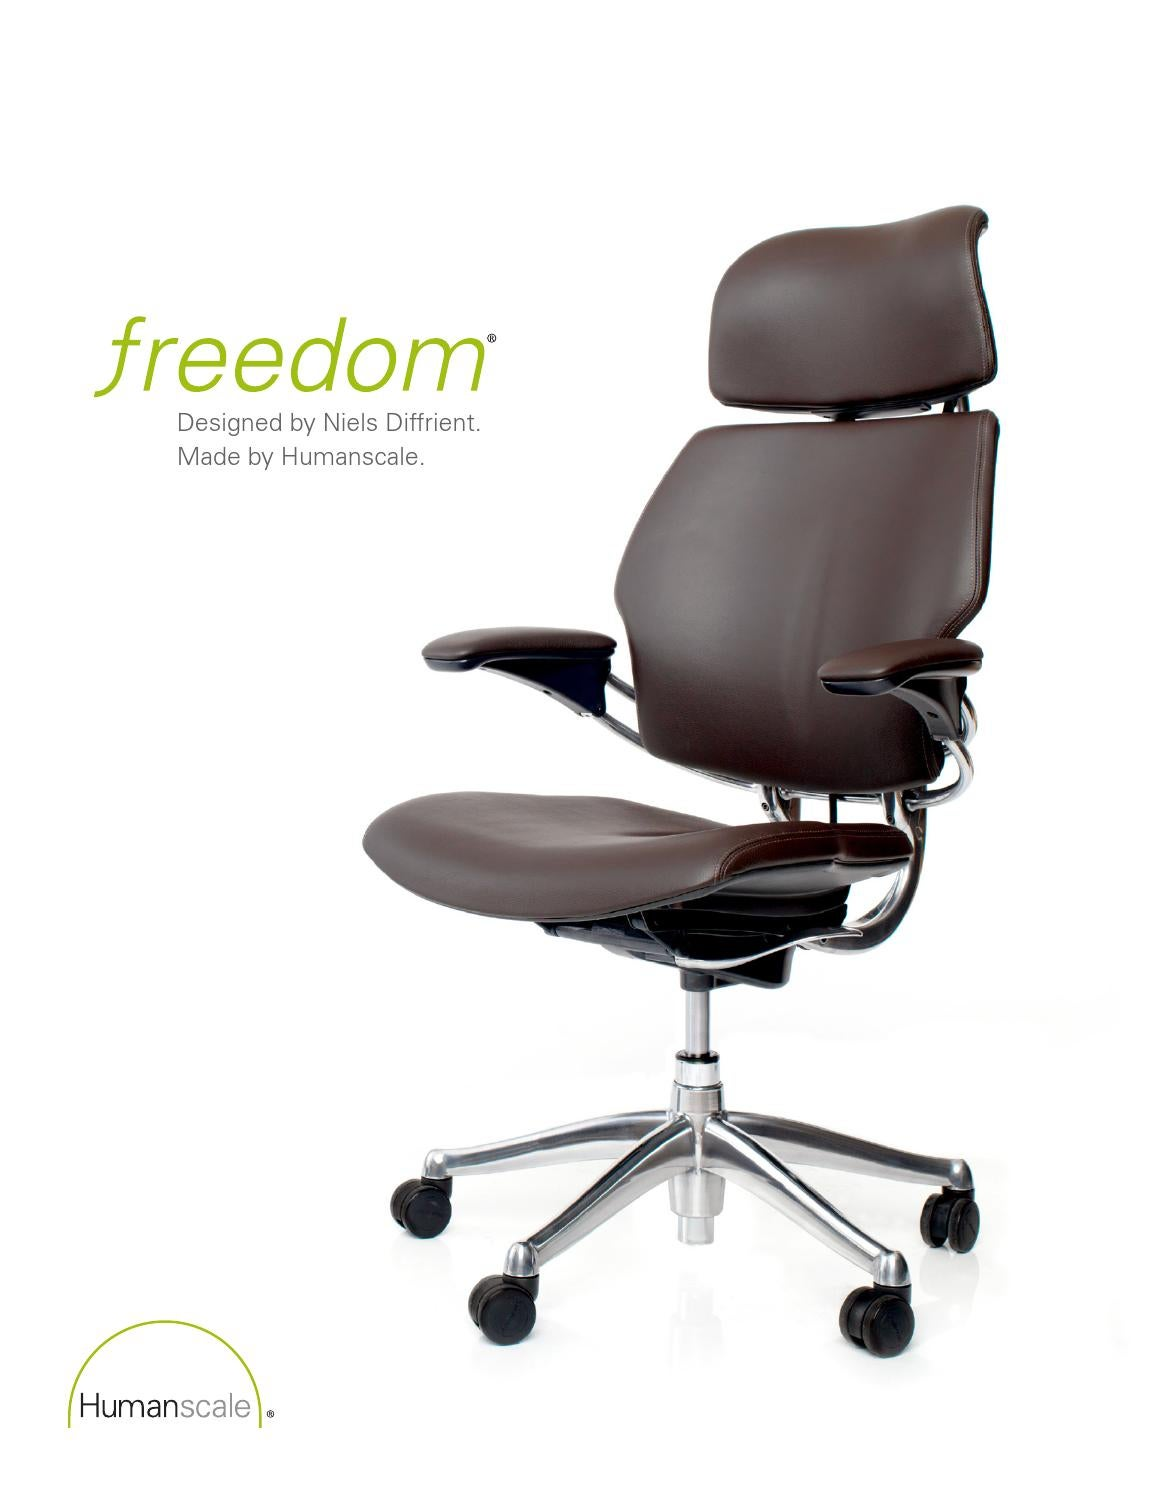 Freedom Furniture Head Office Xtra Humanscale Freedom Chair By Xtra Furniture Issuu